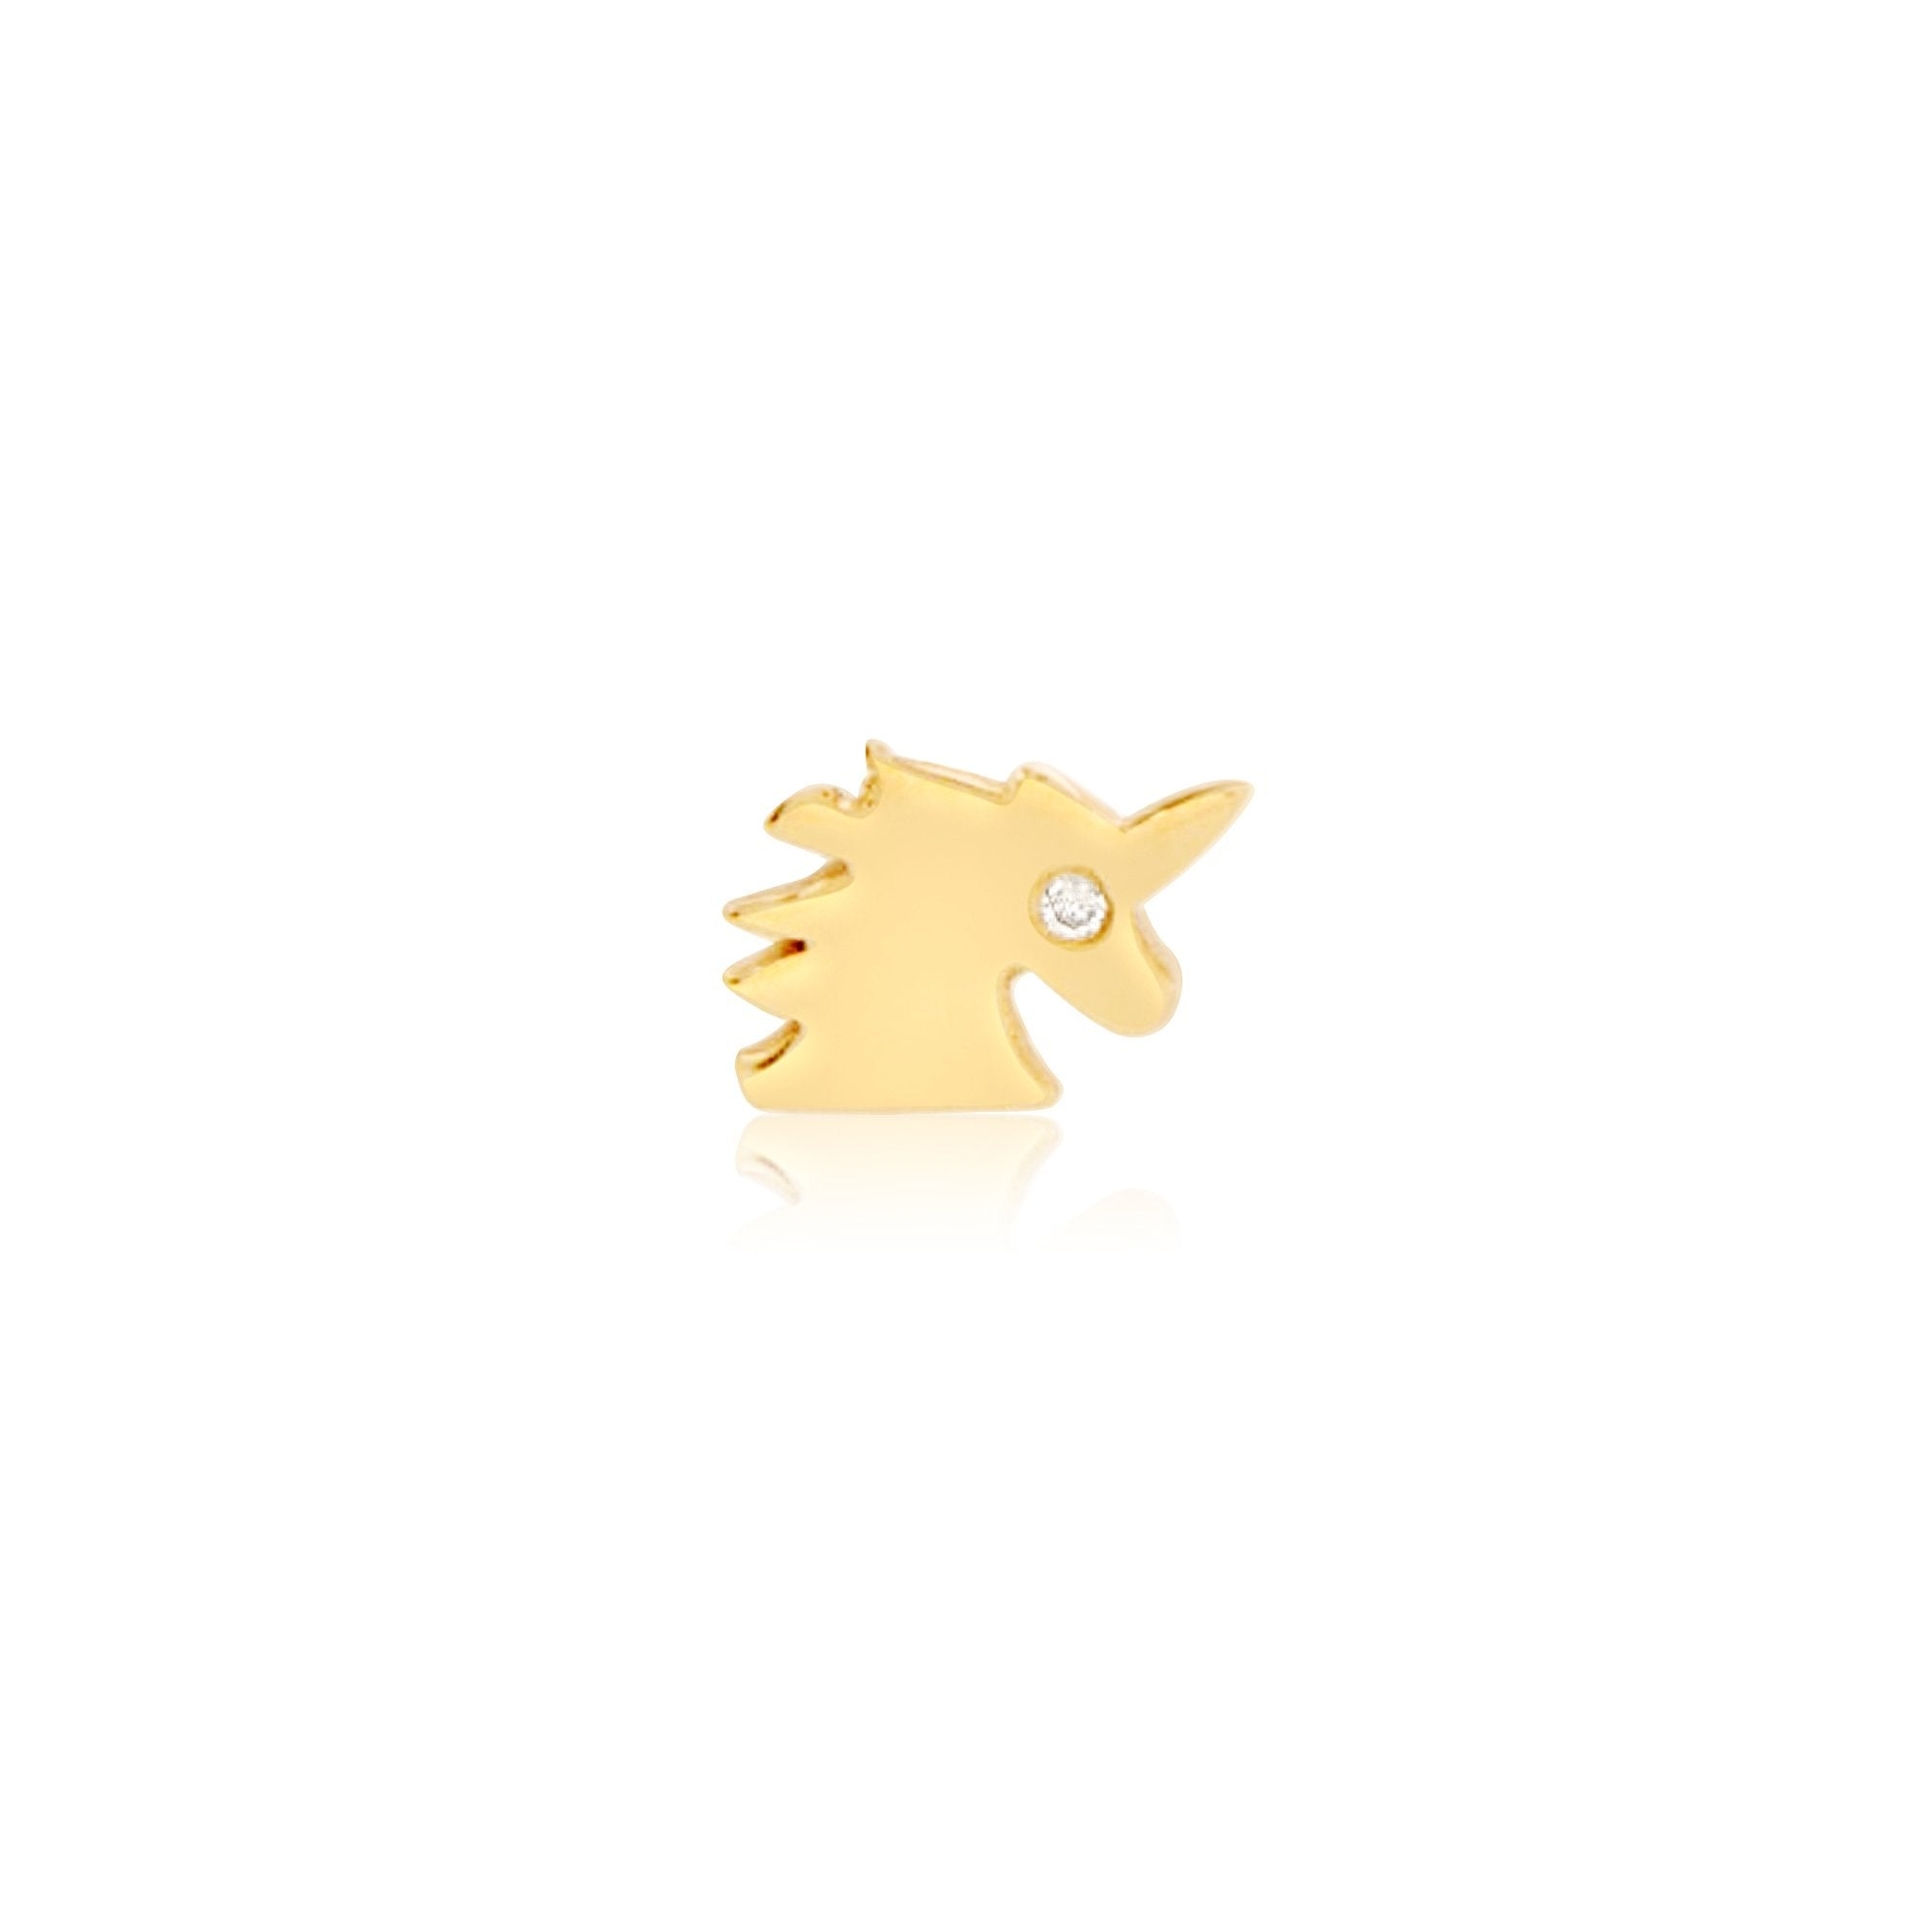 Teeny Diamond Unicorn Stud